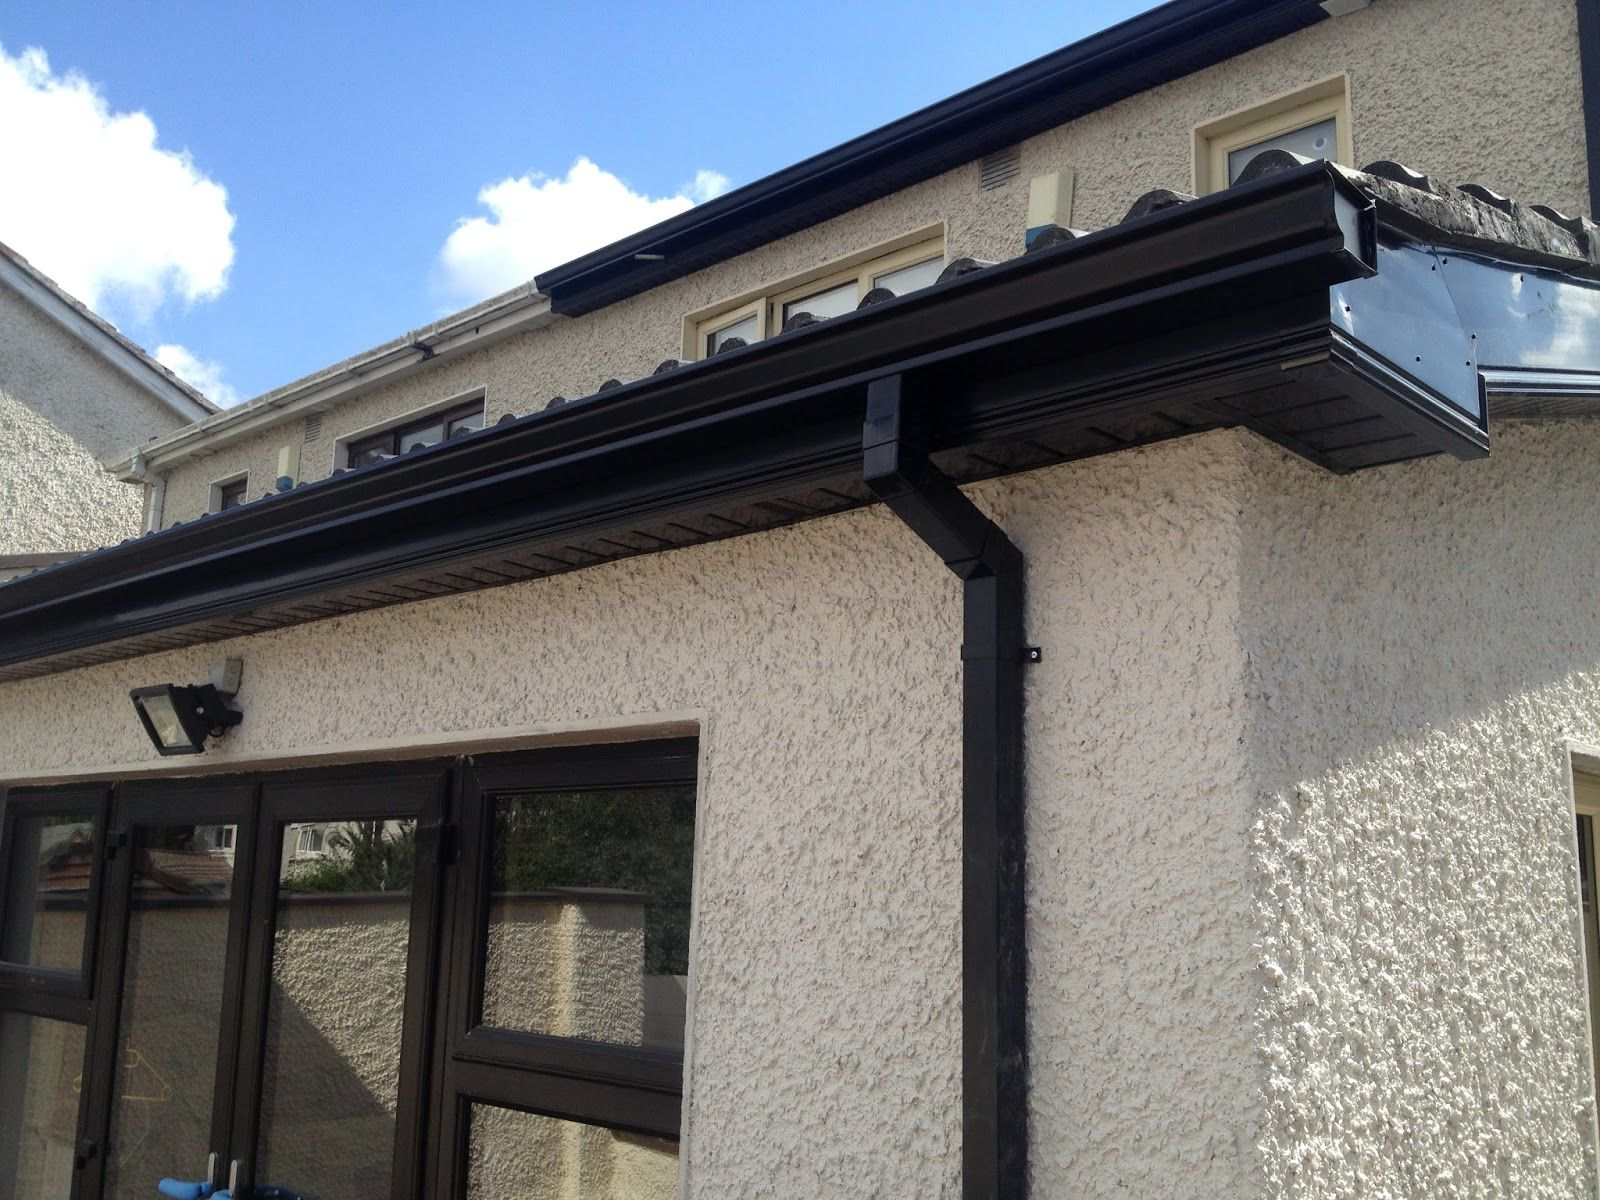 Best Image Result For Black Gutters On House Seamless Gutters 400 x 300